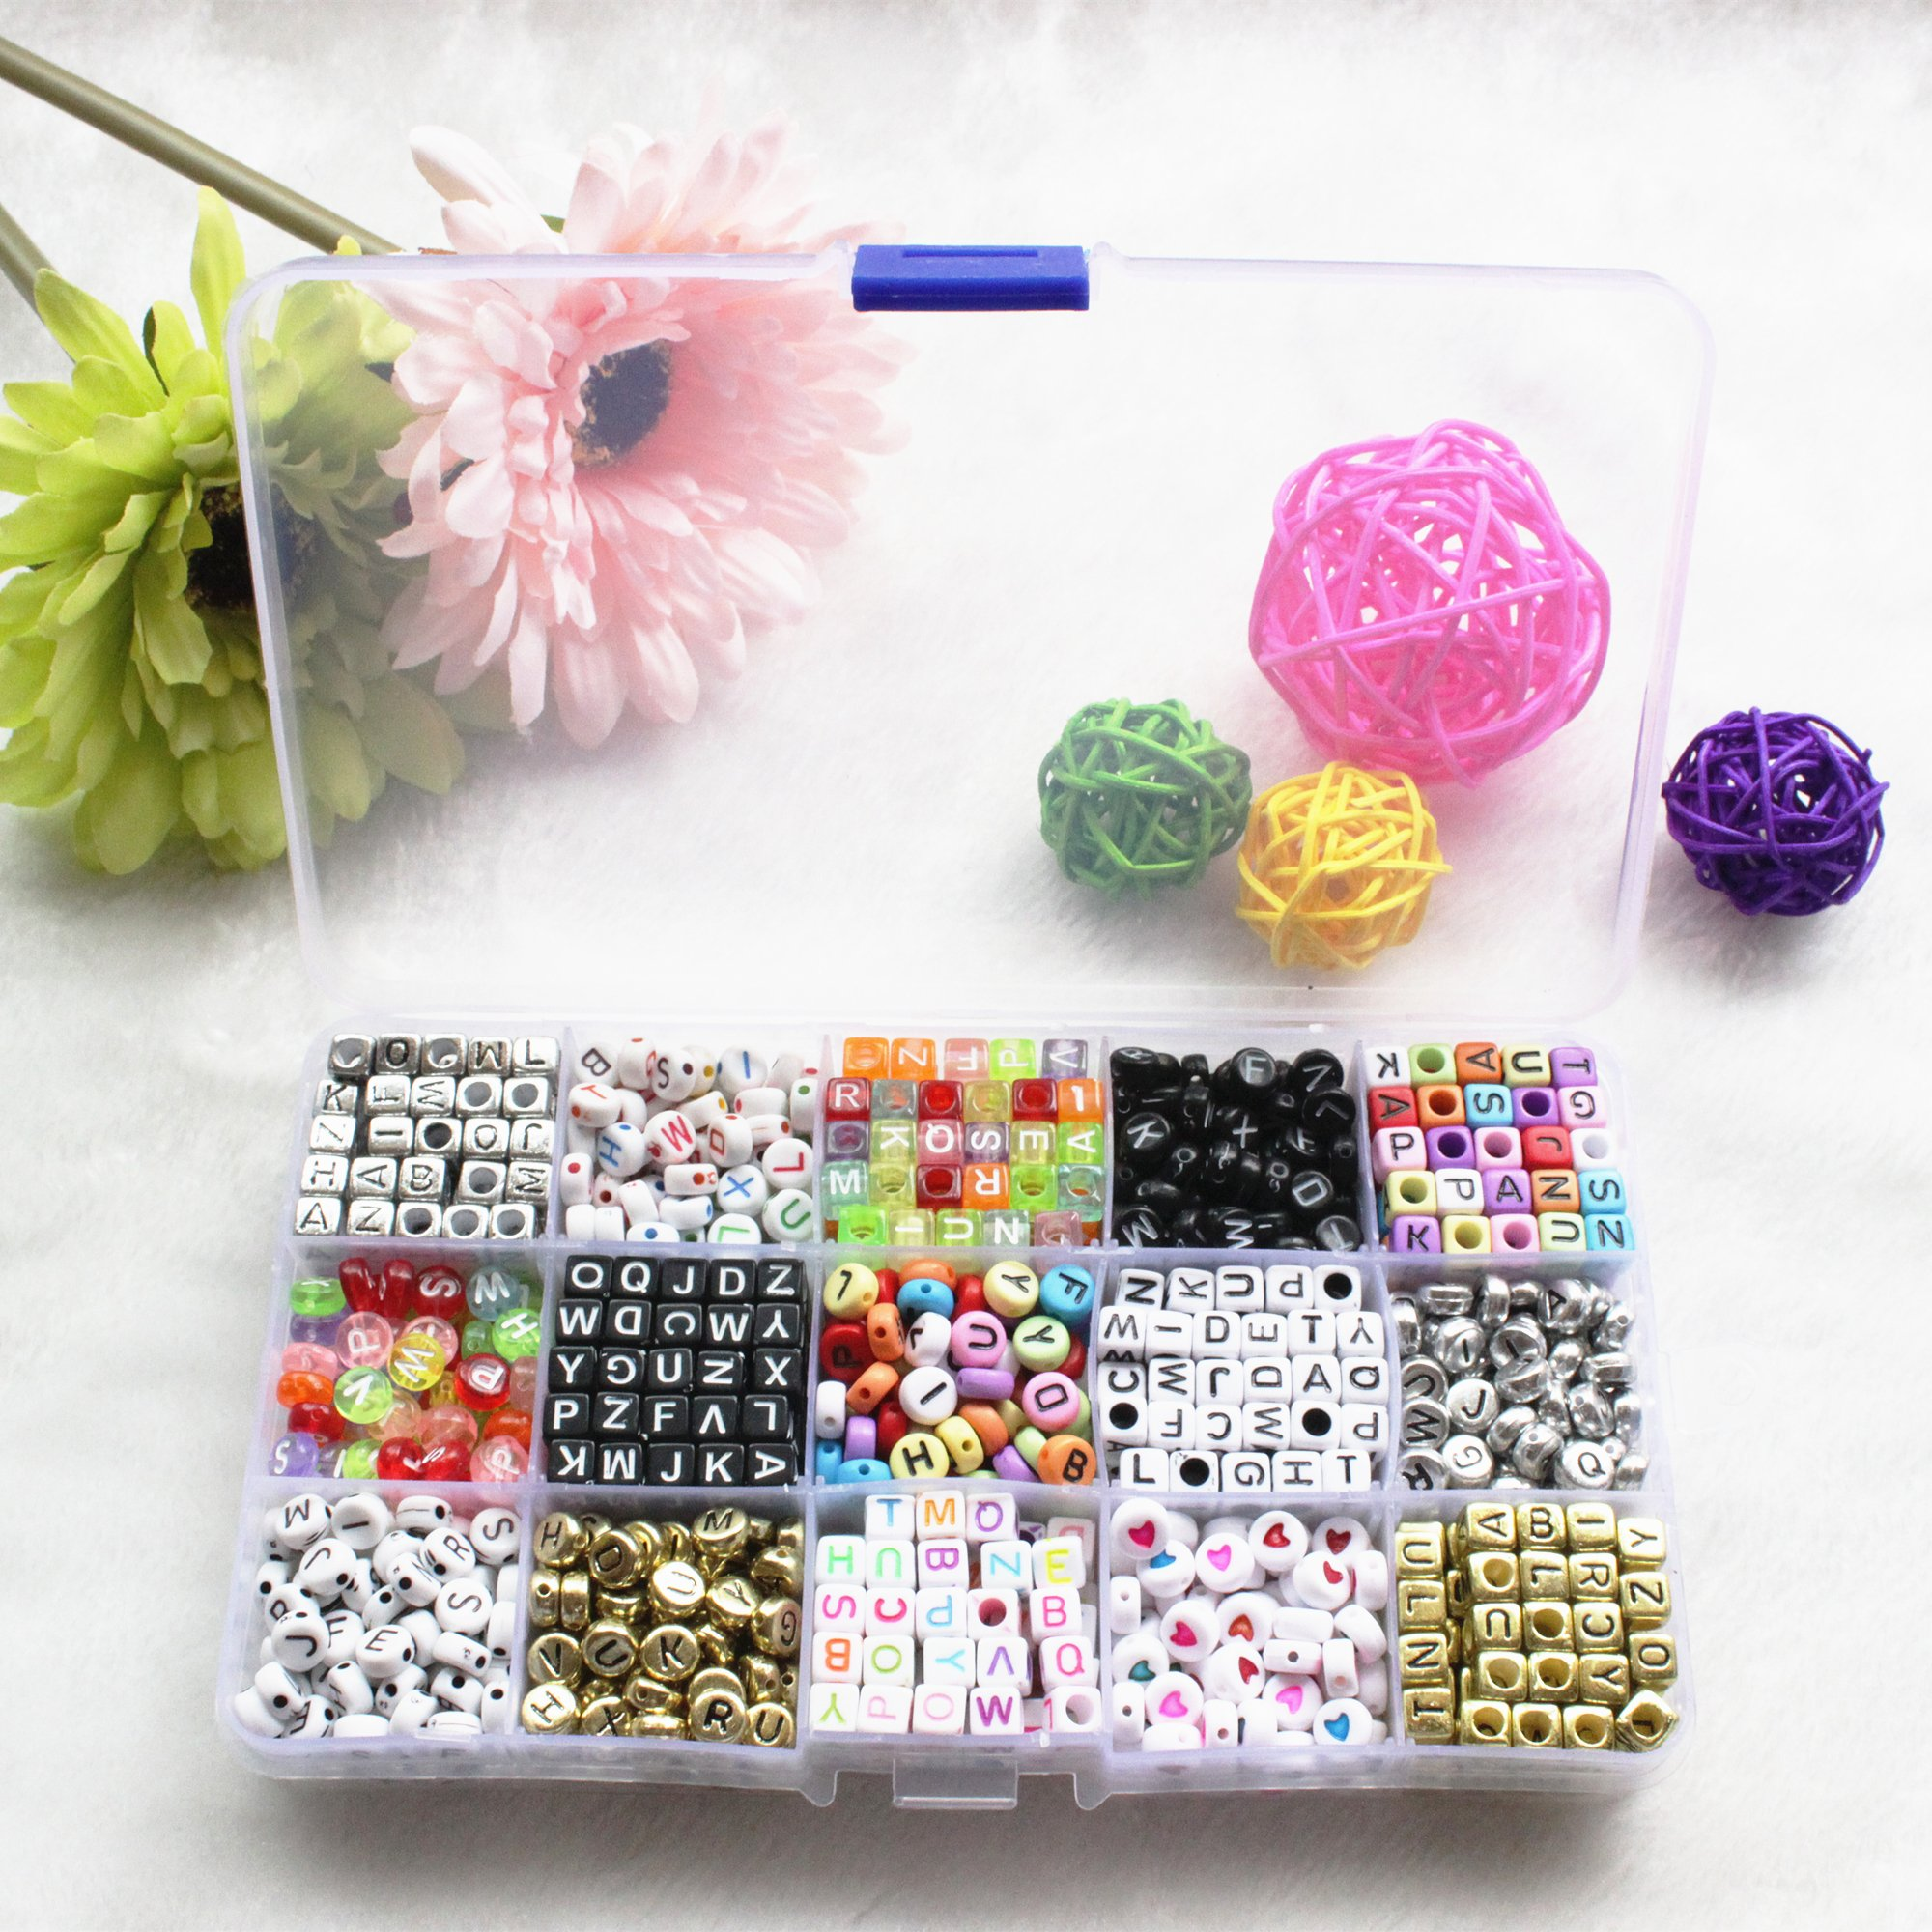 Wolpark 1000 pcs Mixed DIY Acrylic Alphabet Letters Beads Cube Charms for DIY Loom Bands Bracelets